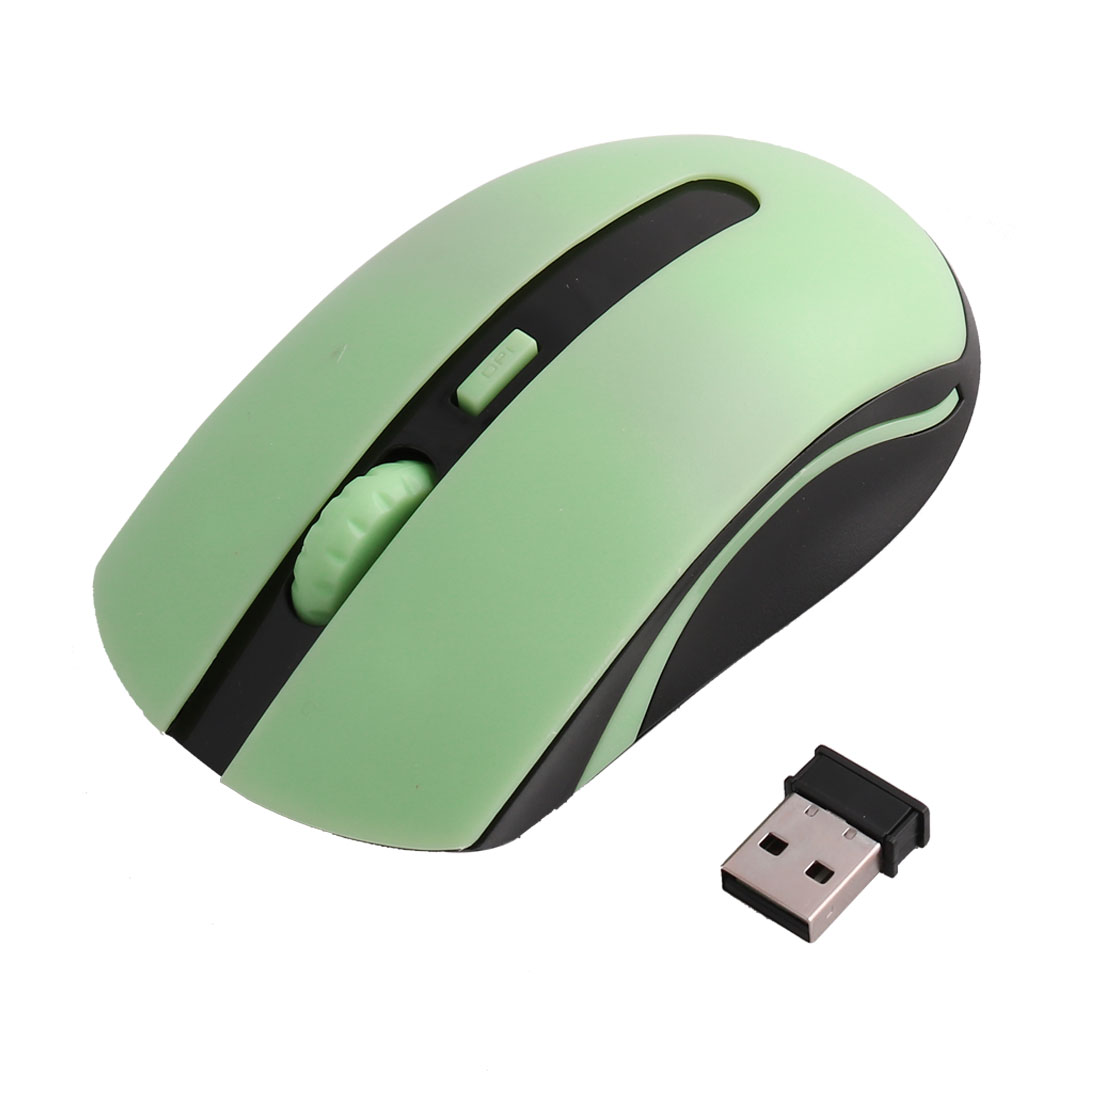 PC Computer 2.4G USB Receiver Wireless Portable Mobile Mouse Optical Mice Green